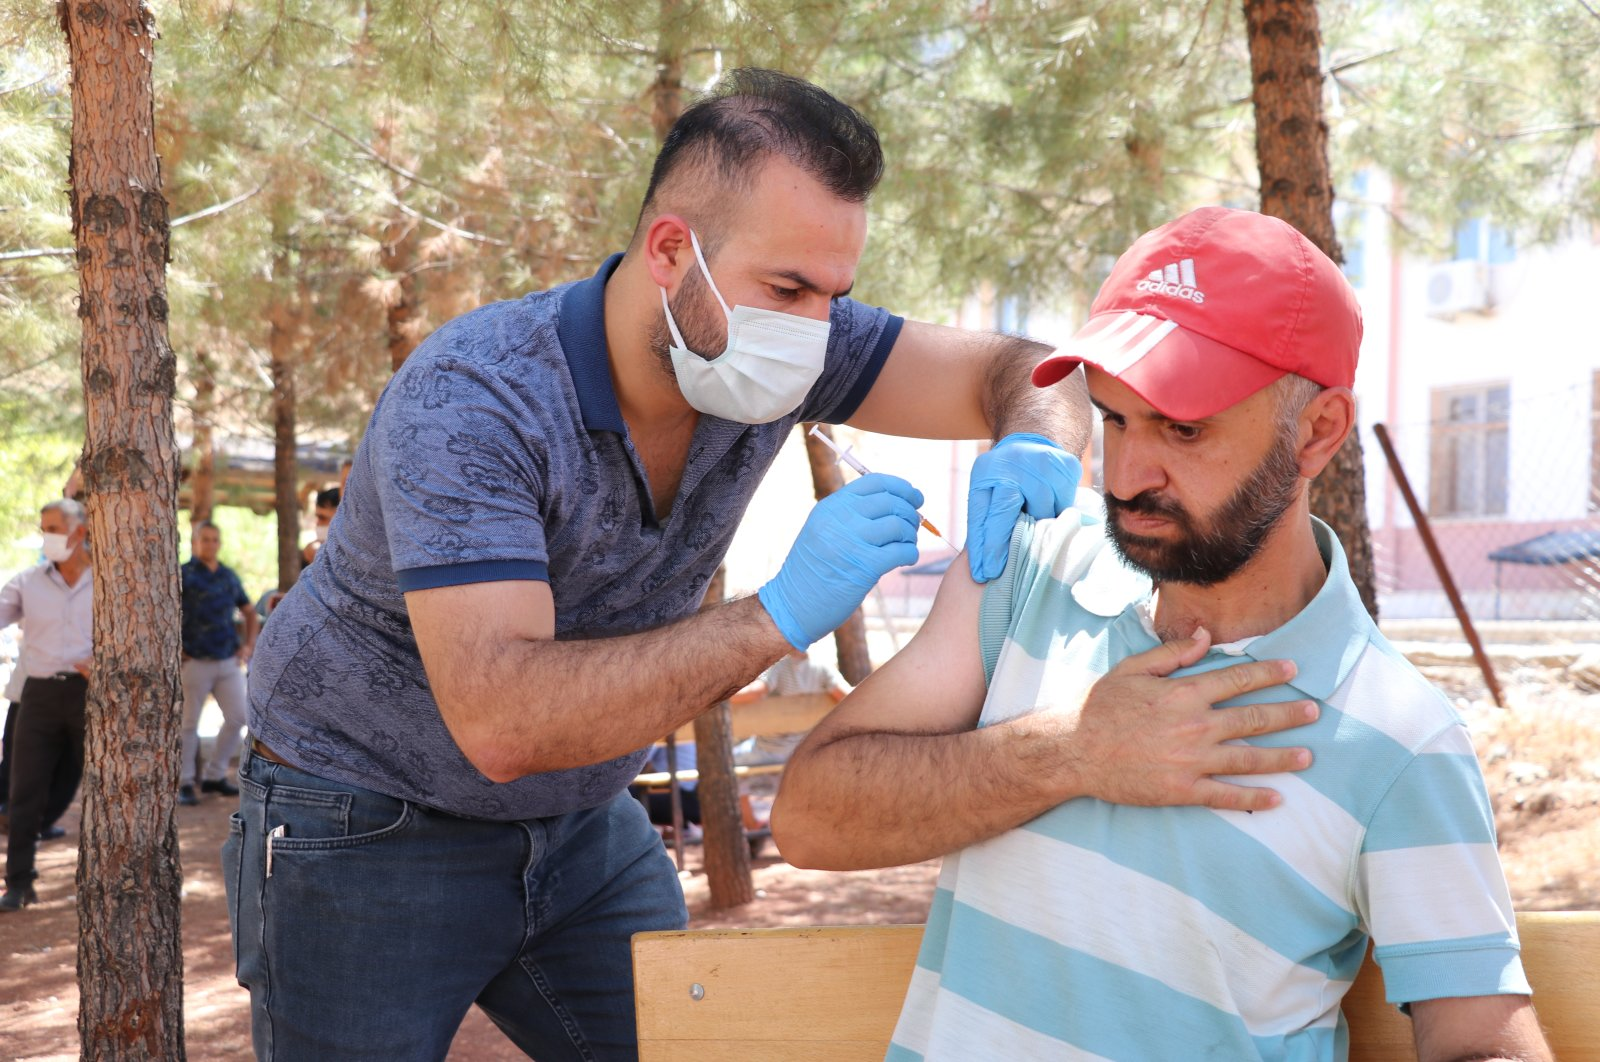 A man gets vaccinated in the courtyard of a school used as a vaccination venue, in Siirt, eastern Turkey, Aug. 5, 2021. (AA Photo)